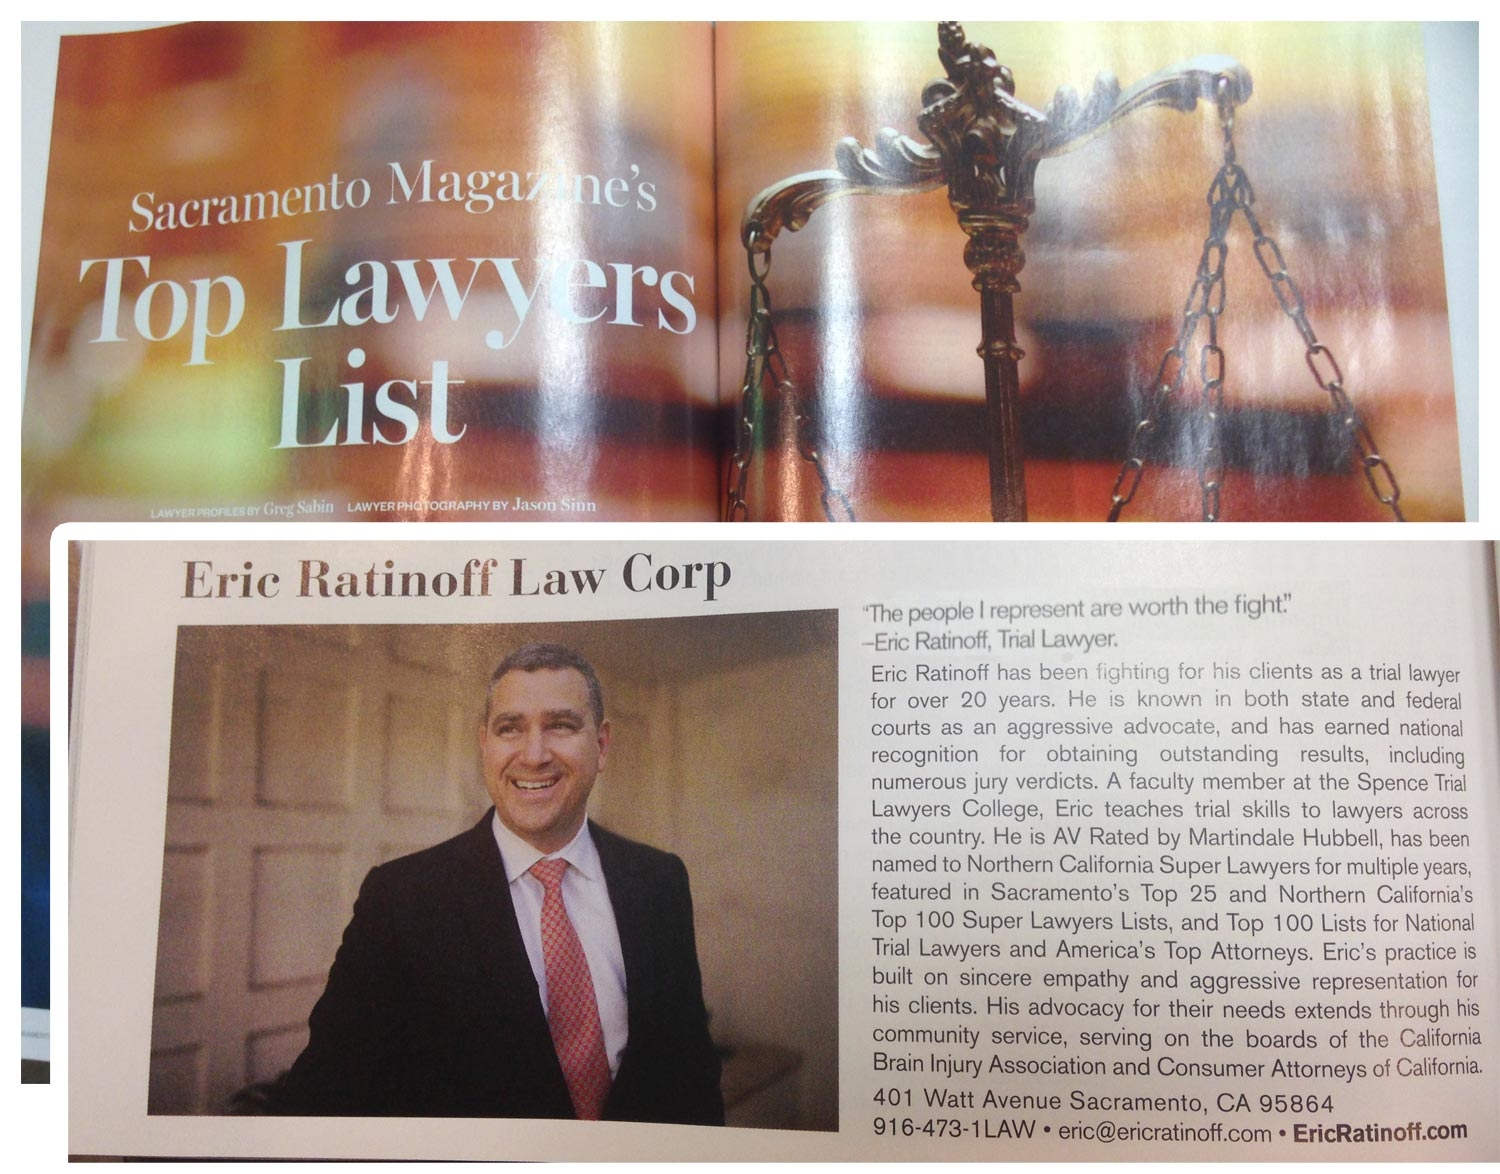 Eric Ratinoff Law Corp image 6